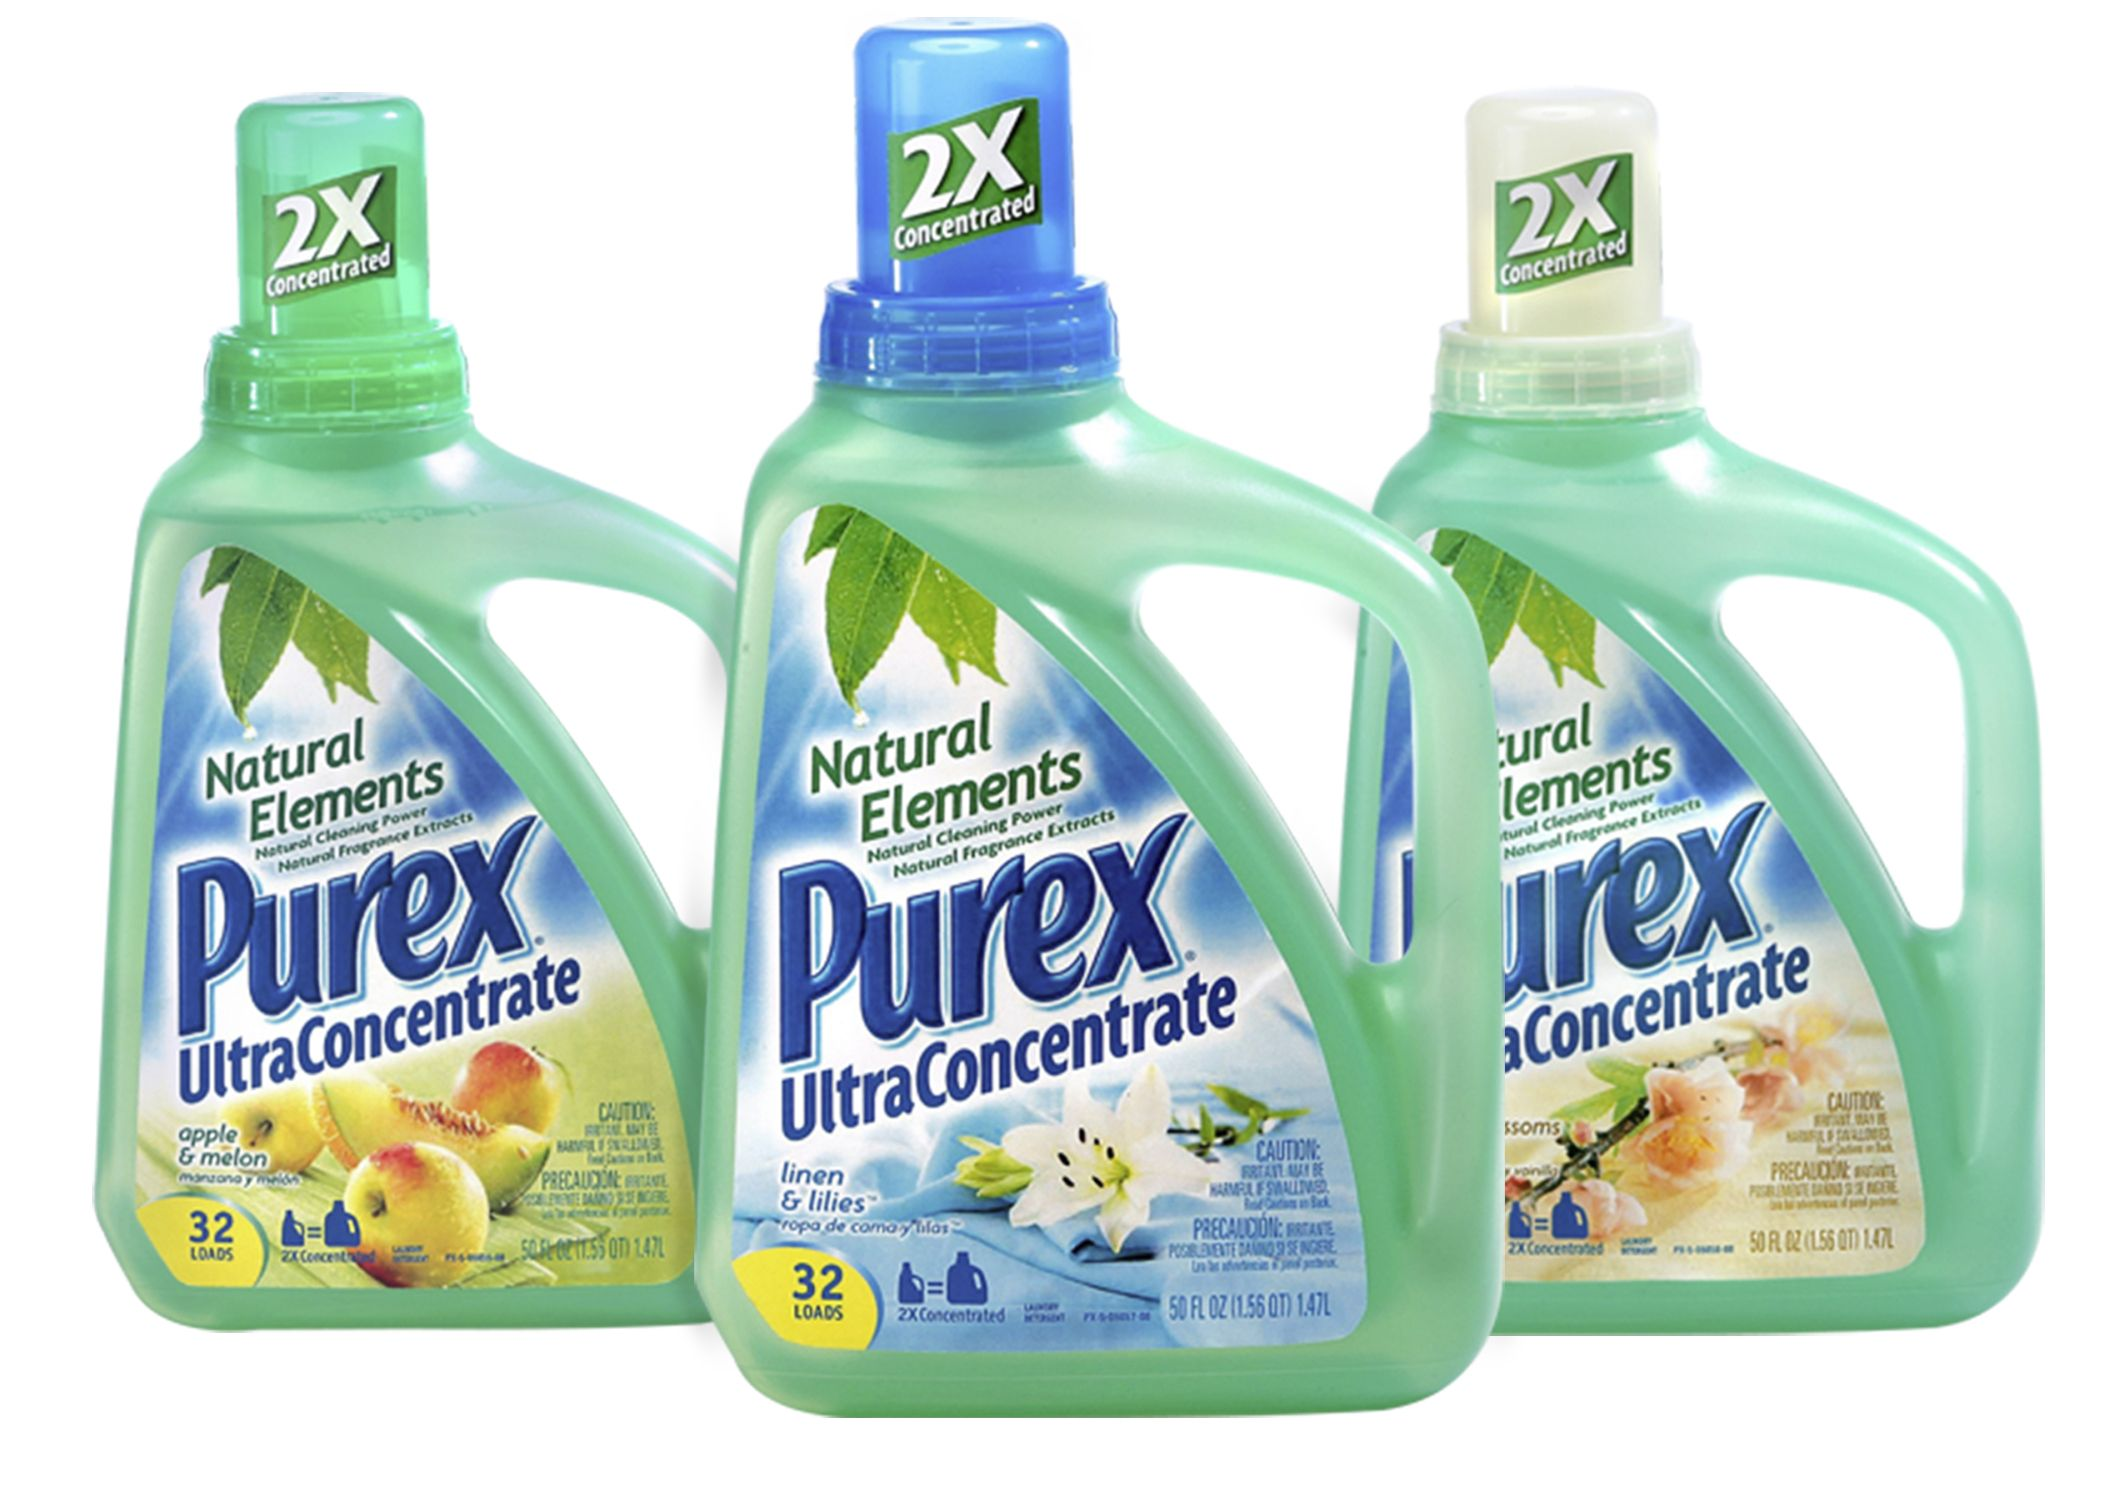 Walgreens Purex Laundry Detergent For Just 1 49 With Images